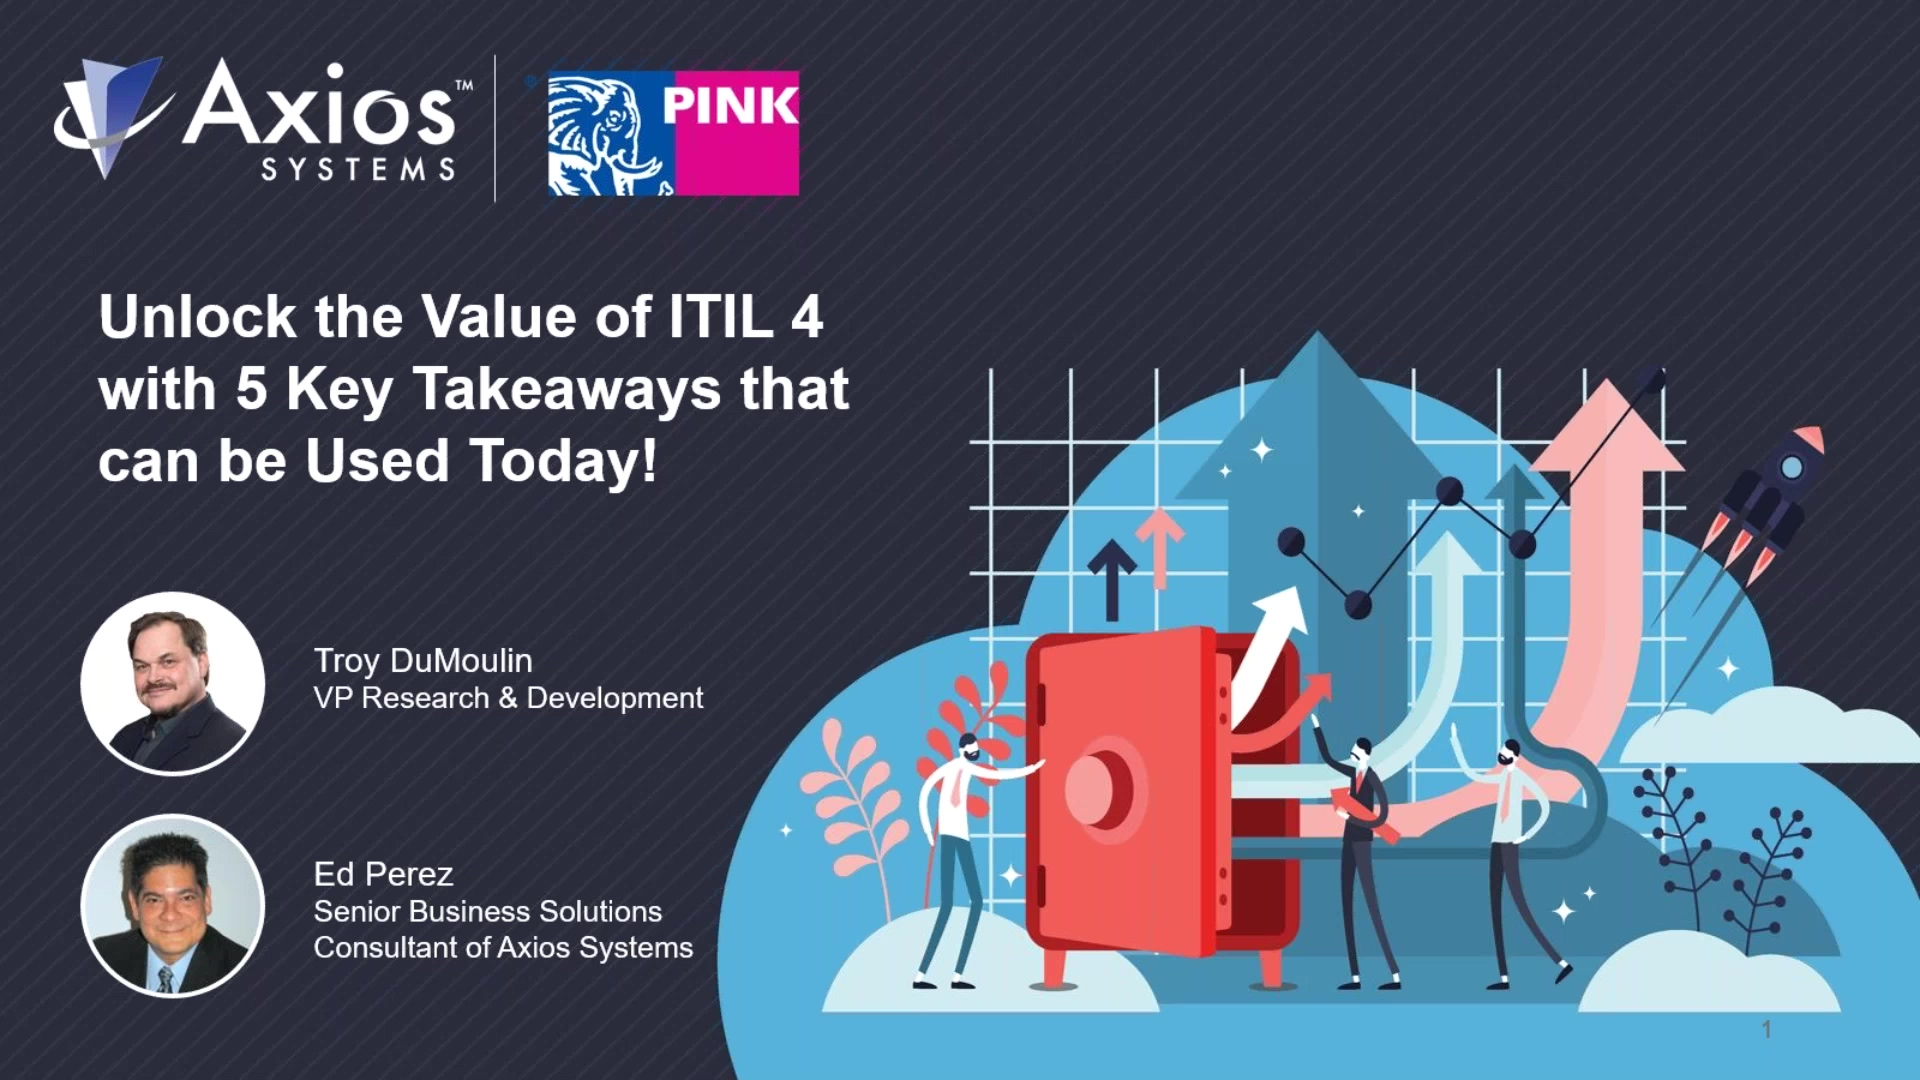 Unlock the Value of ITIL 4 with 5 Key Takeaways that can be Used Today!-thumb